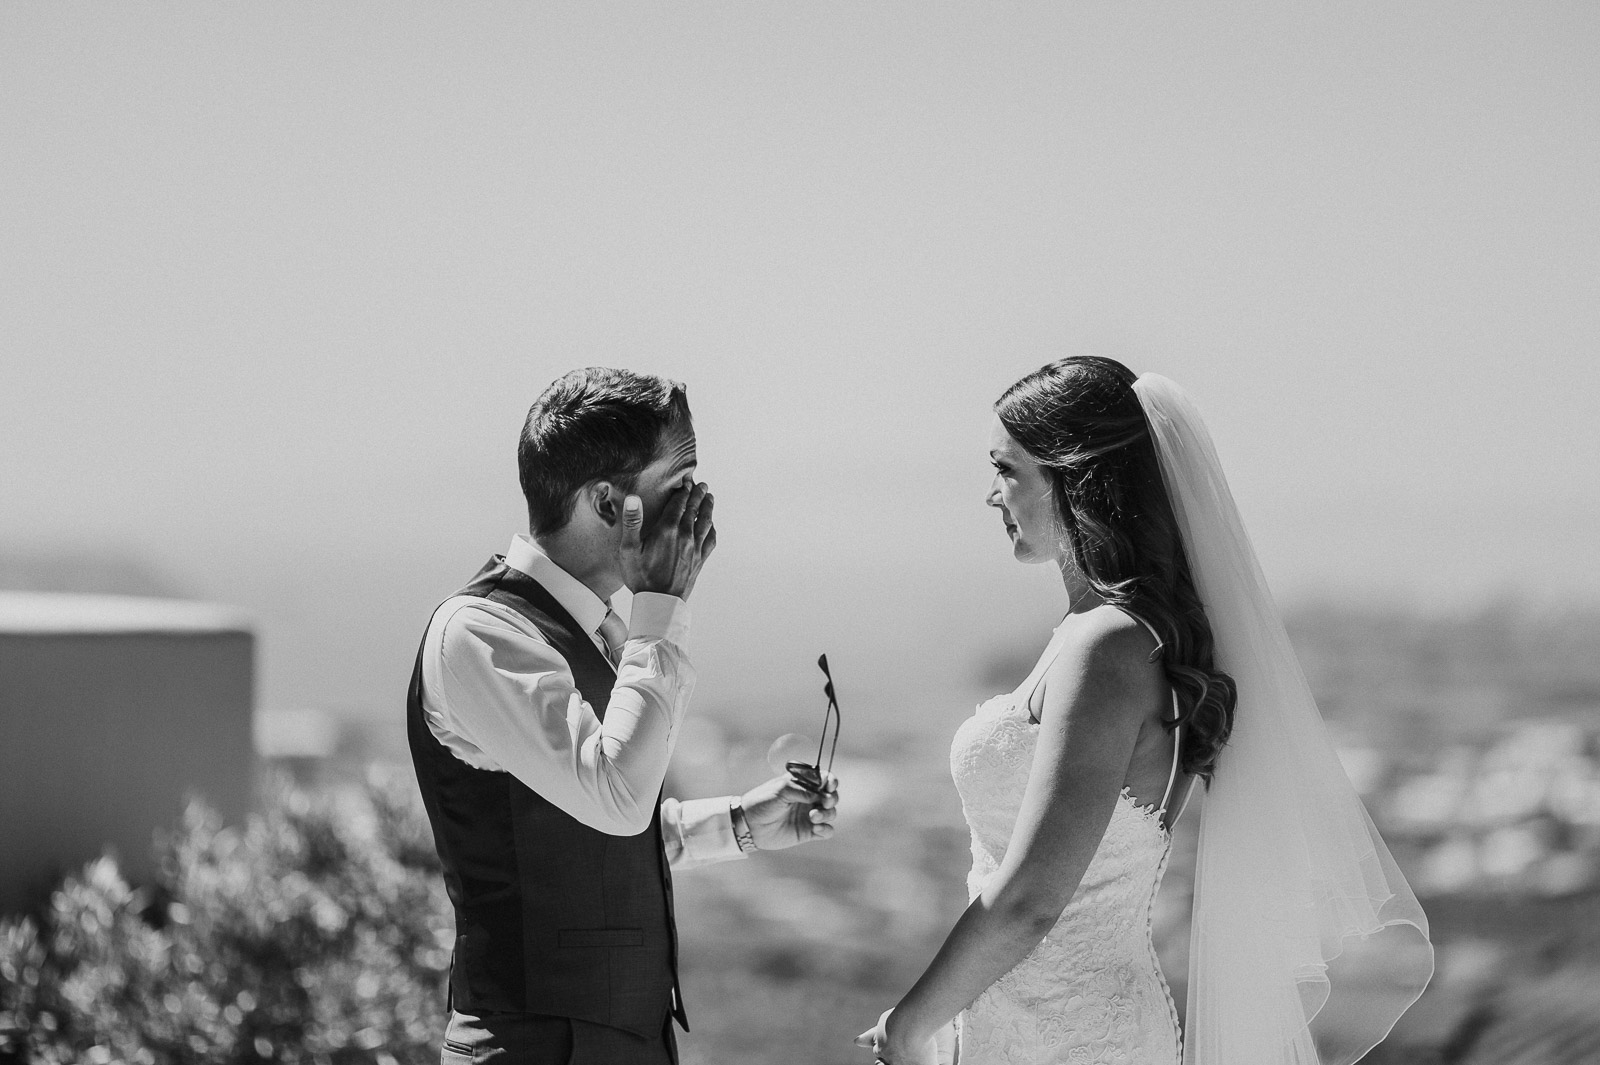 Santorini-Wedding-Photographer-Greece-Destination-Weddings-Mait-Juriado-M&J-Studios-030